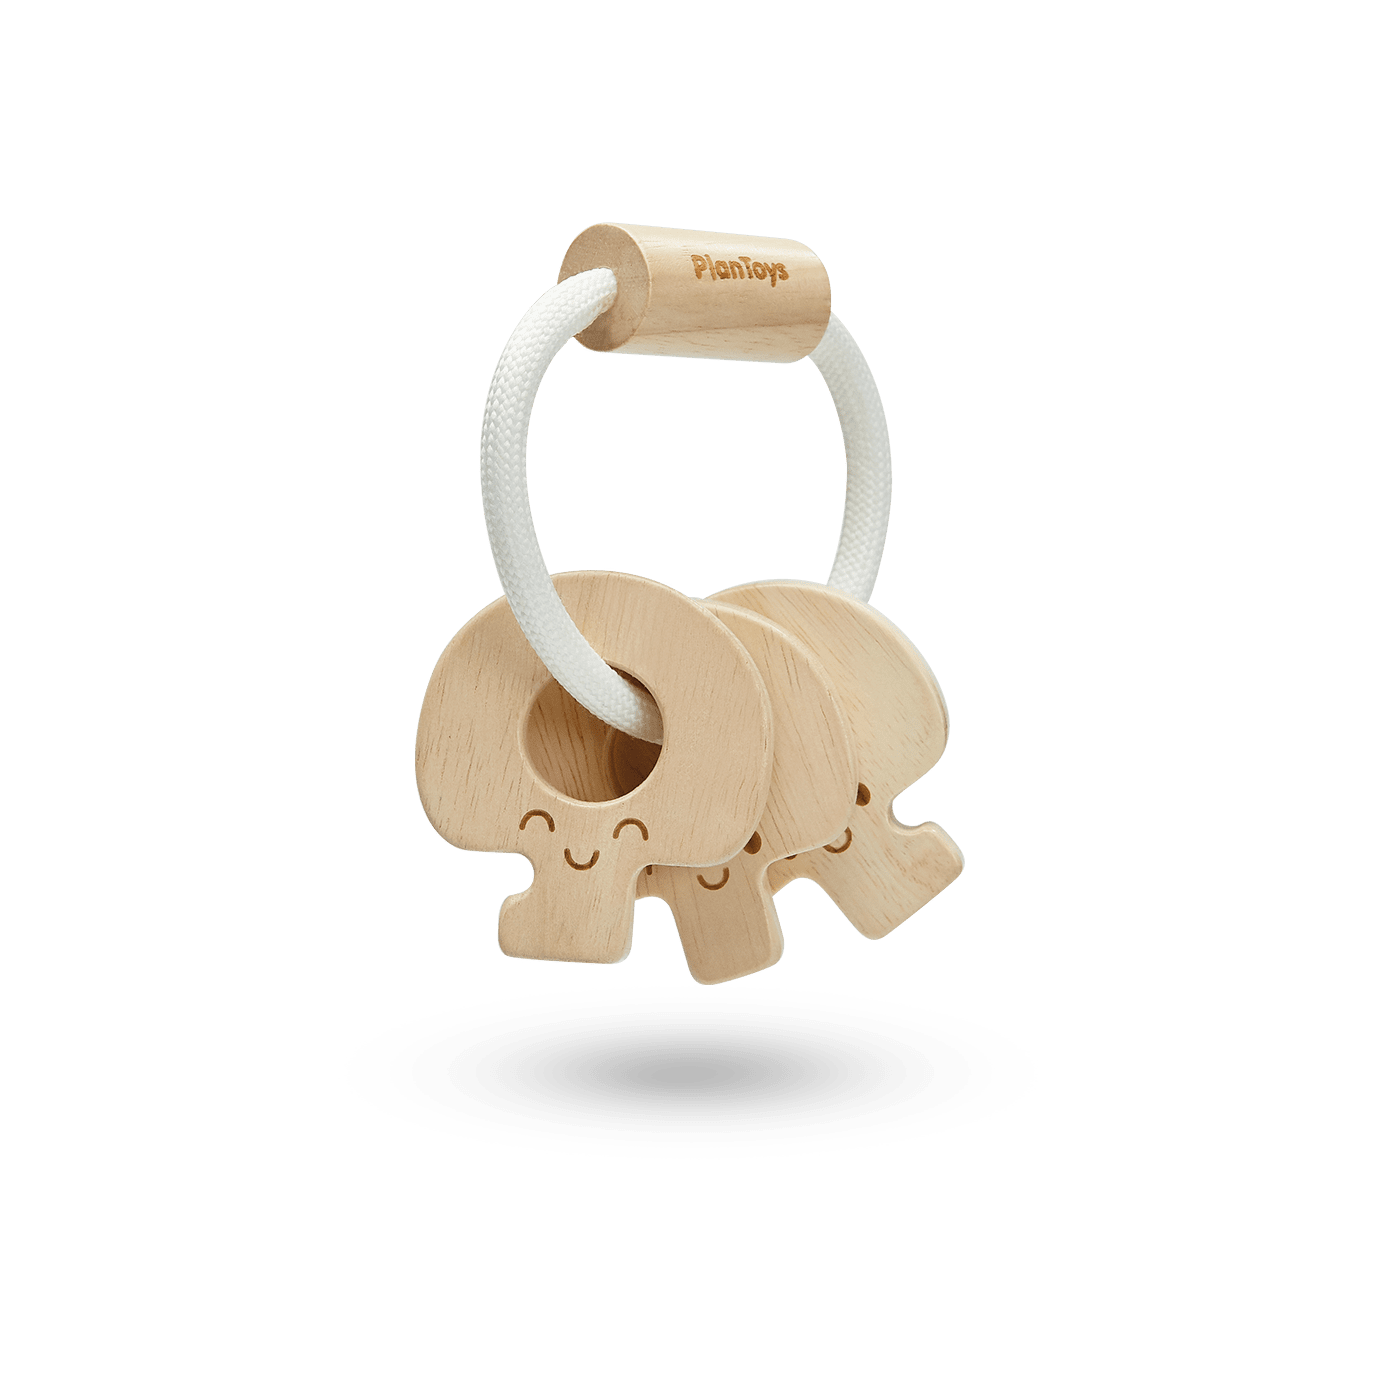 5267_PlanToys_BABY_KEY_RATTLE_-_NATURAL_Babies_Auditory_Visual_Tactile_Coordination_Fine_Motor_Emotion_0-6m_Wooden_toys_Education_toys_Safety_Toys_Non-toxic_0.png